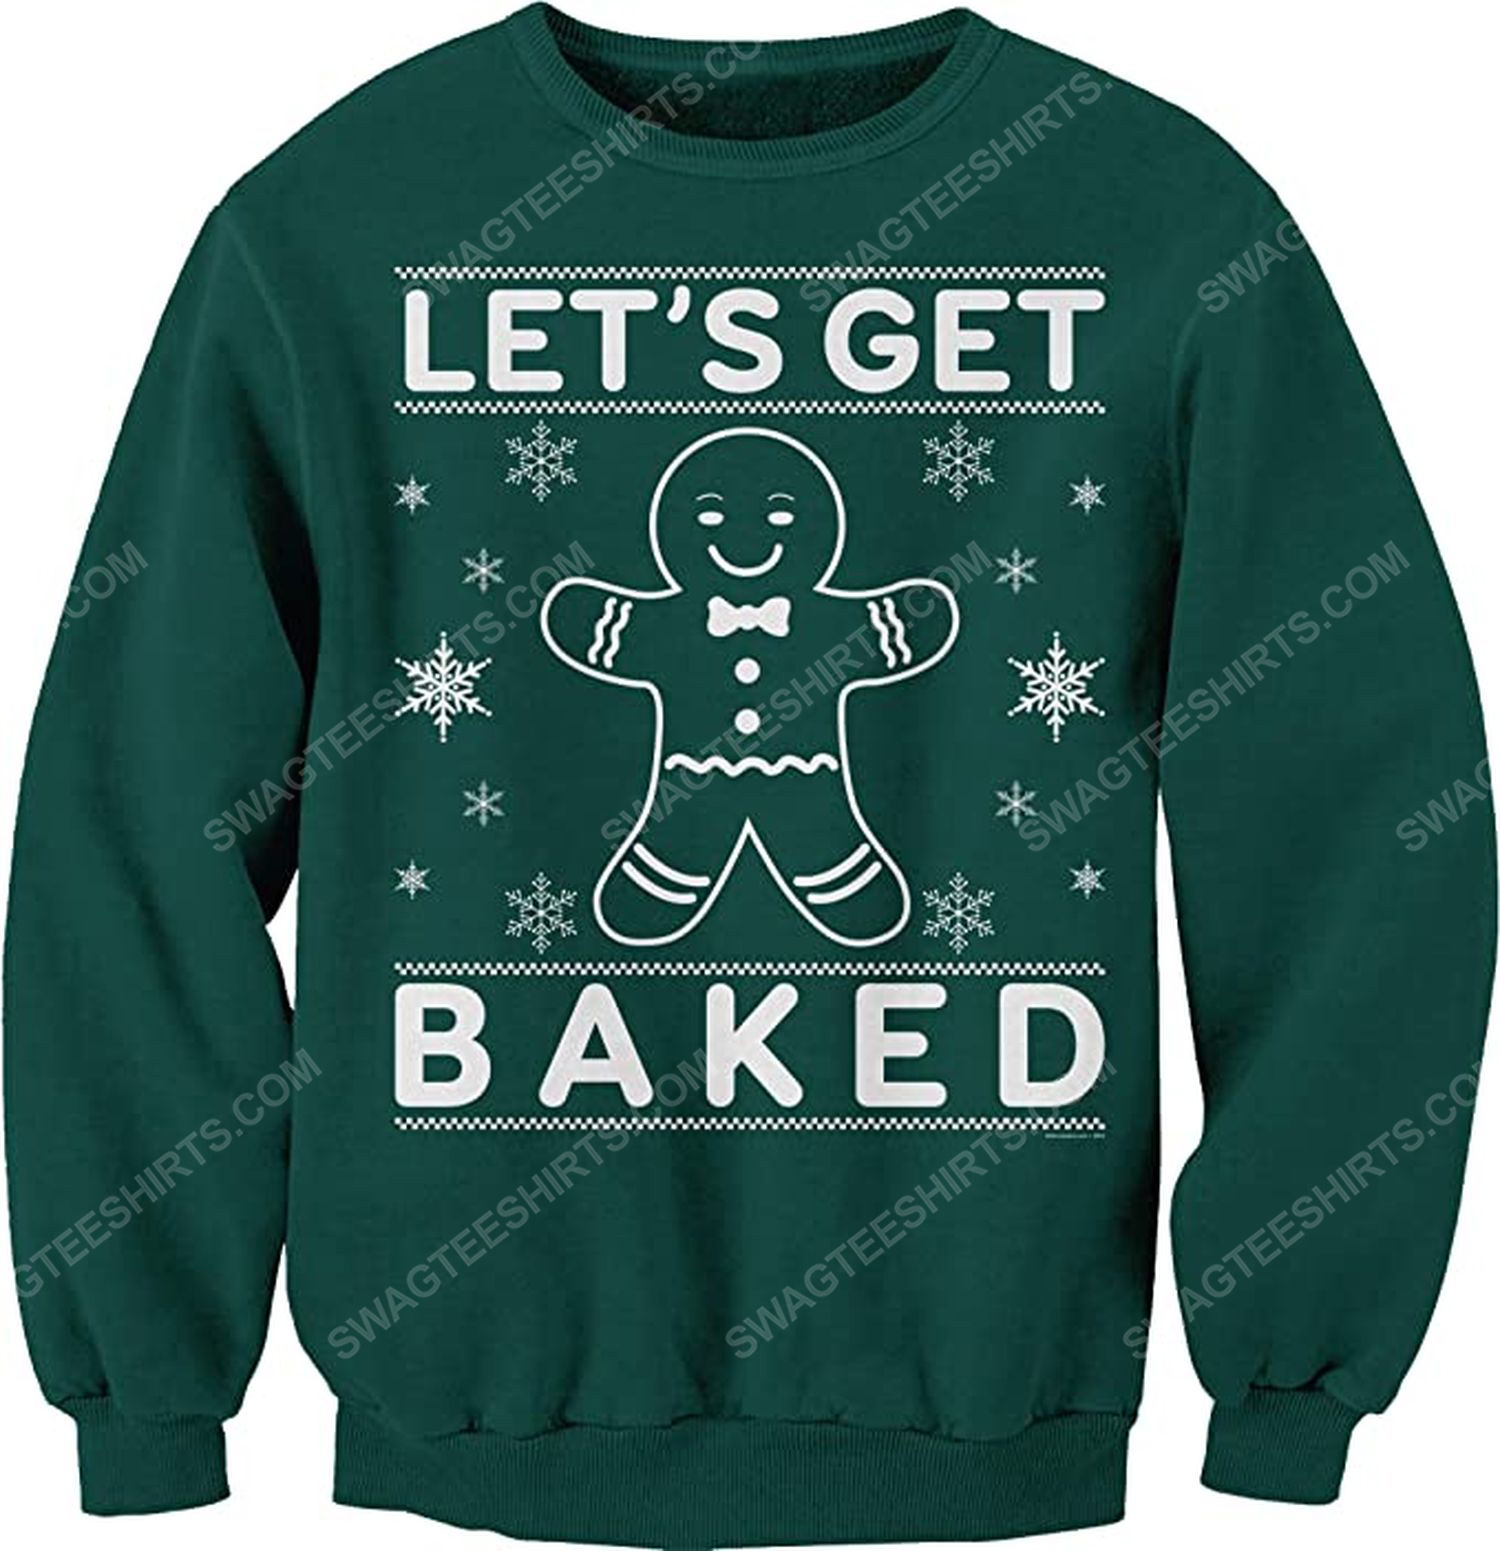 Let's get baked happy gingerbread full print ugly christmas sweater 2 - Copy (3)